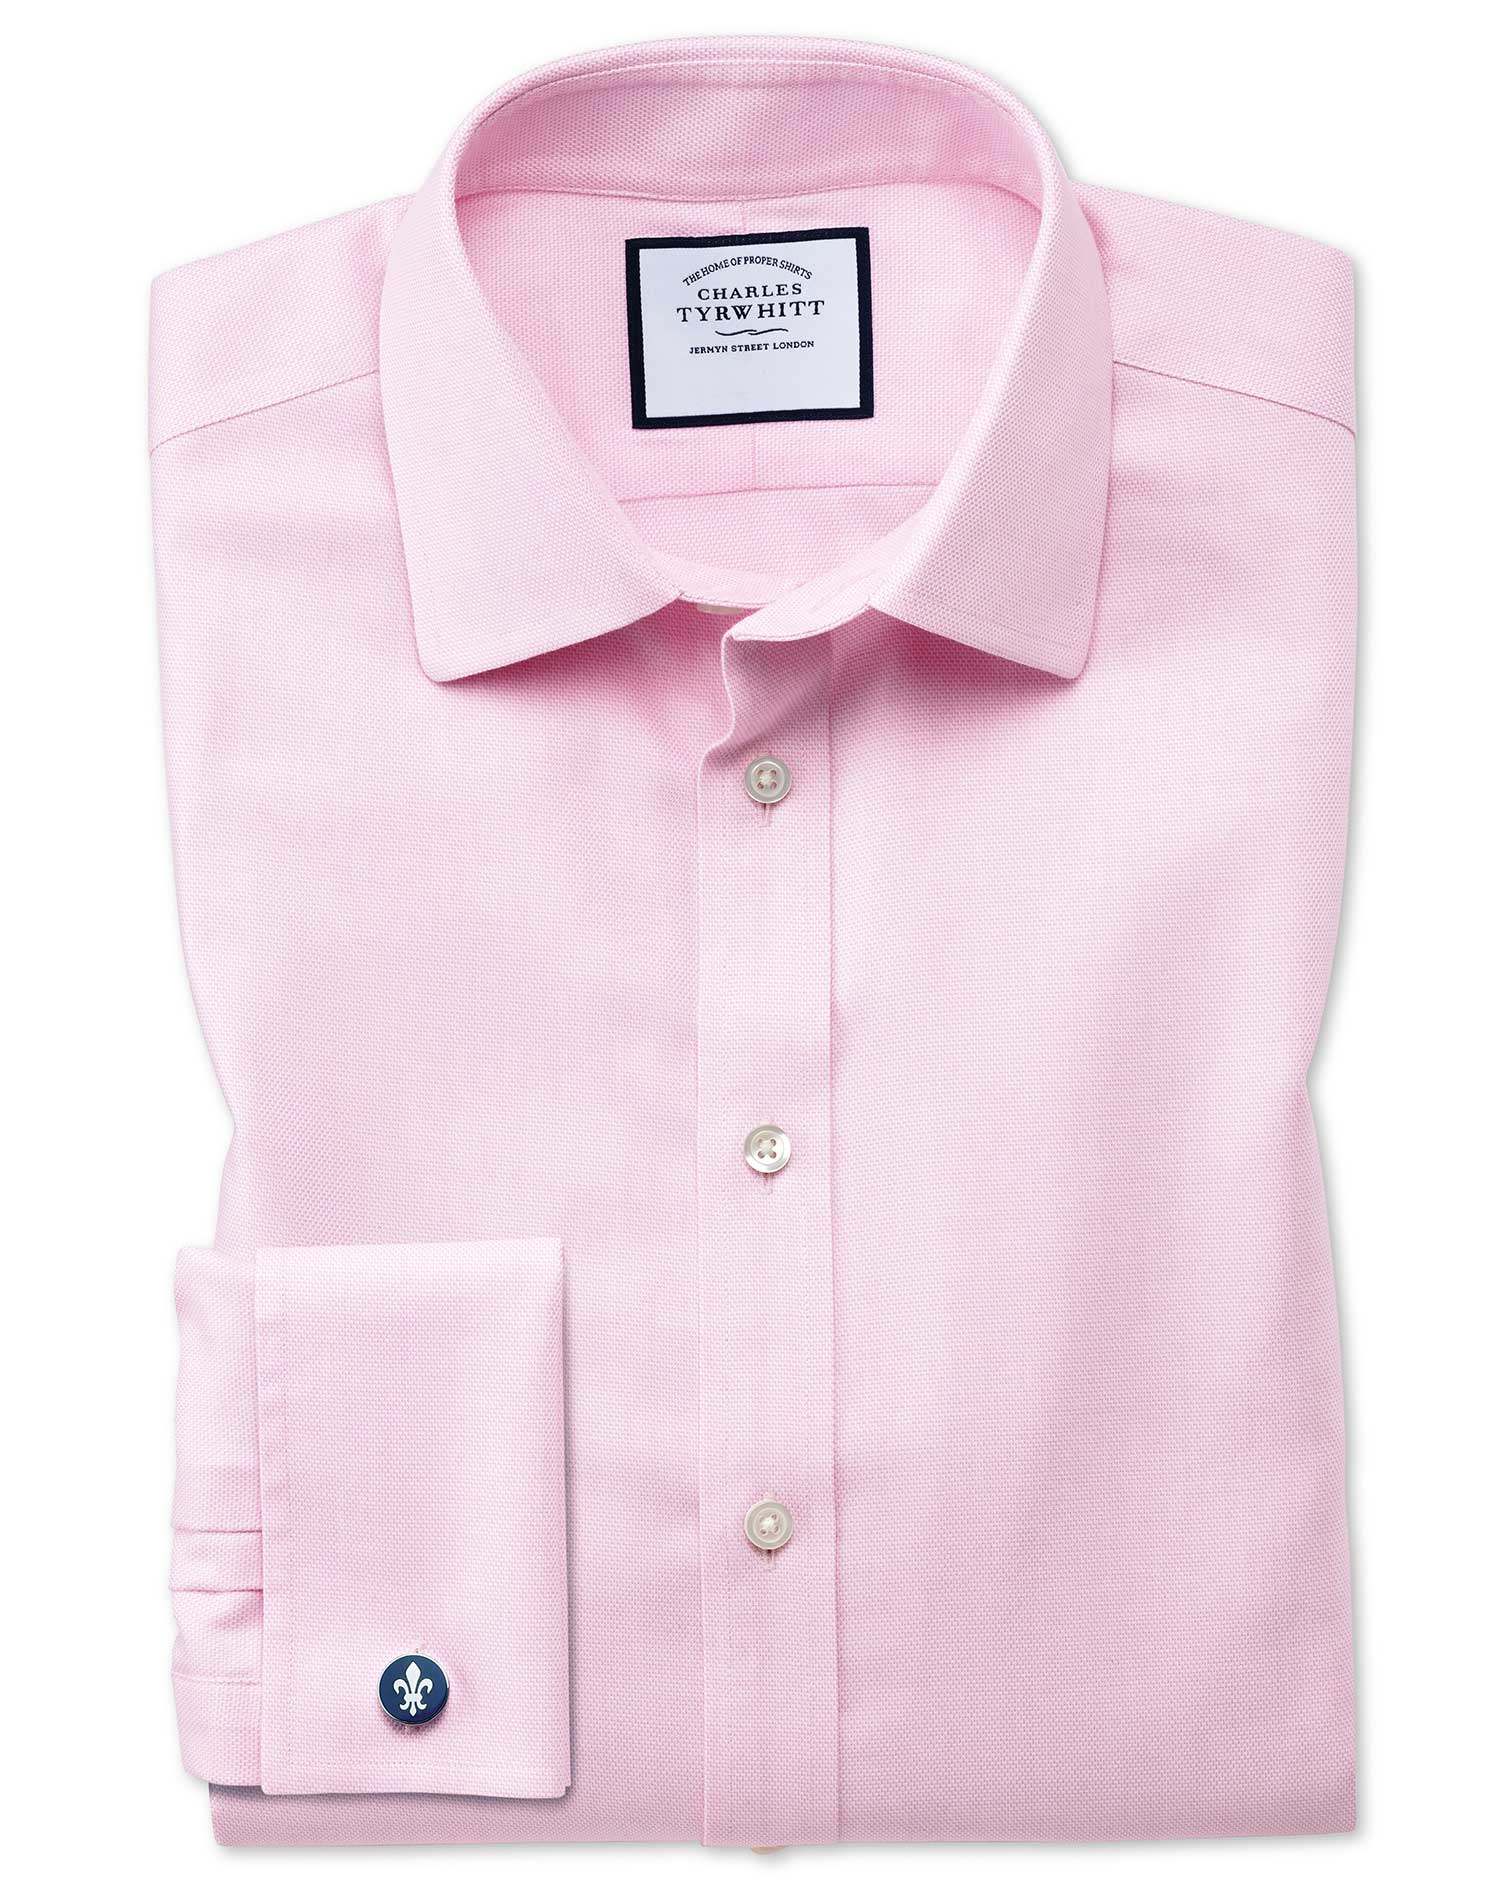 Classic Fit Non-Iron Step Weave Pink Cotton Formal Shirt Double Cuff Size 18/36 by Charles Tyrwhitt